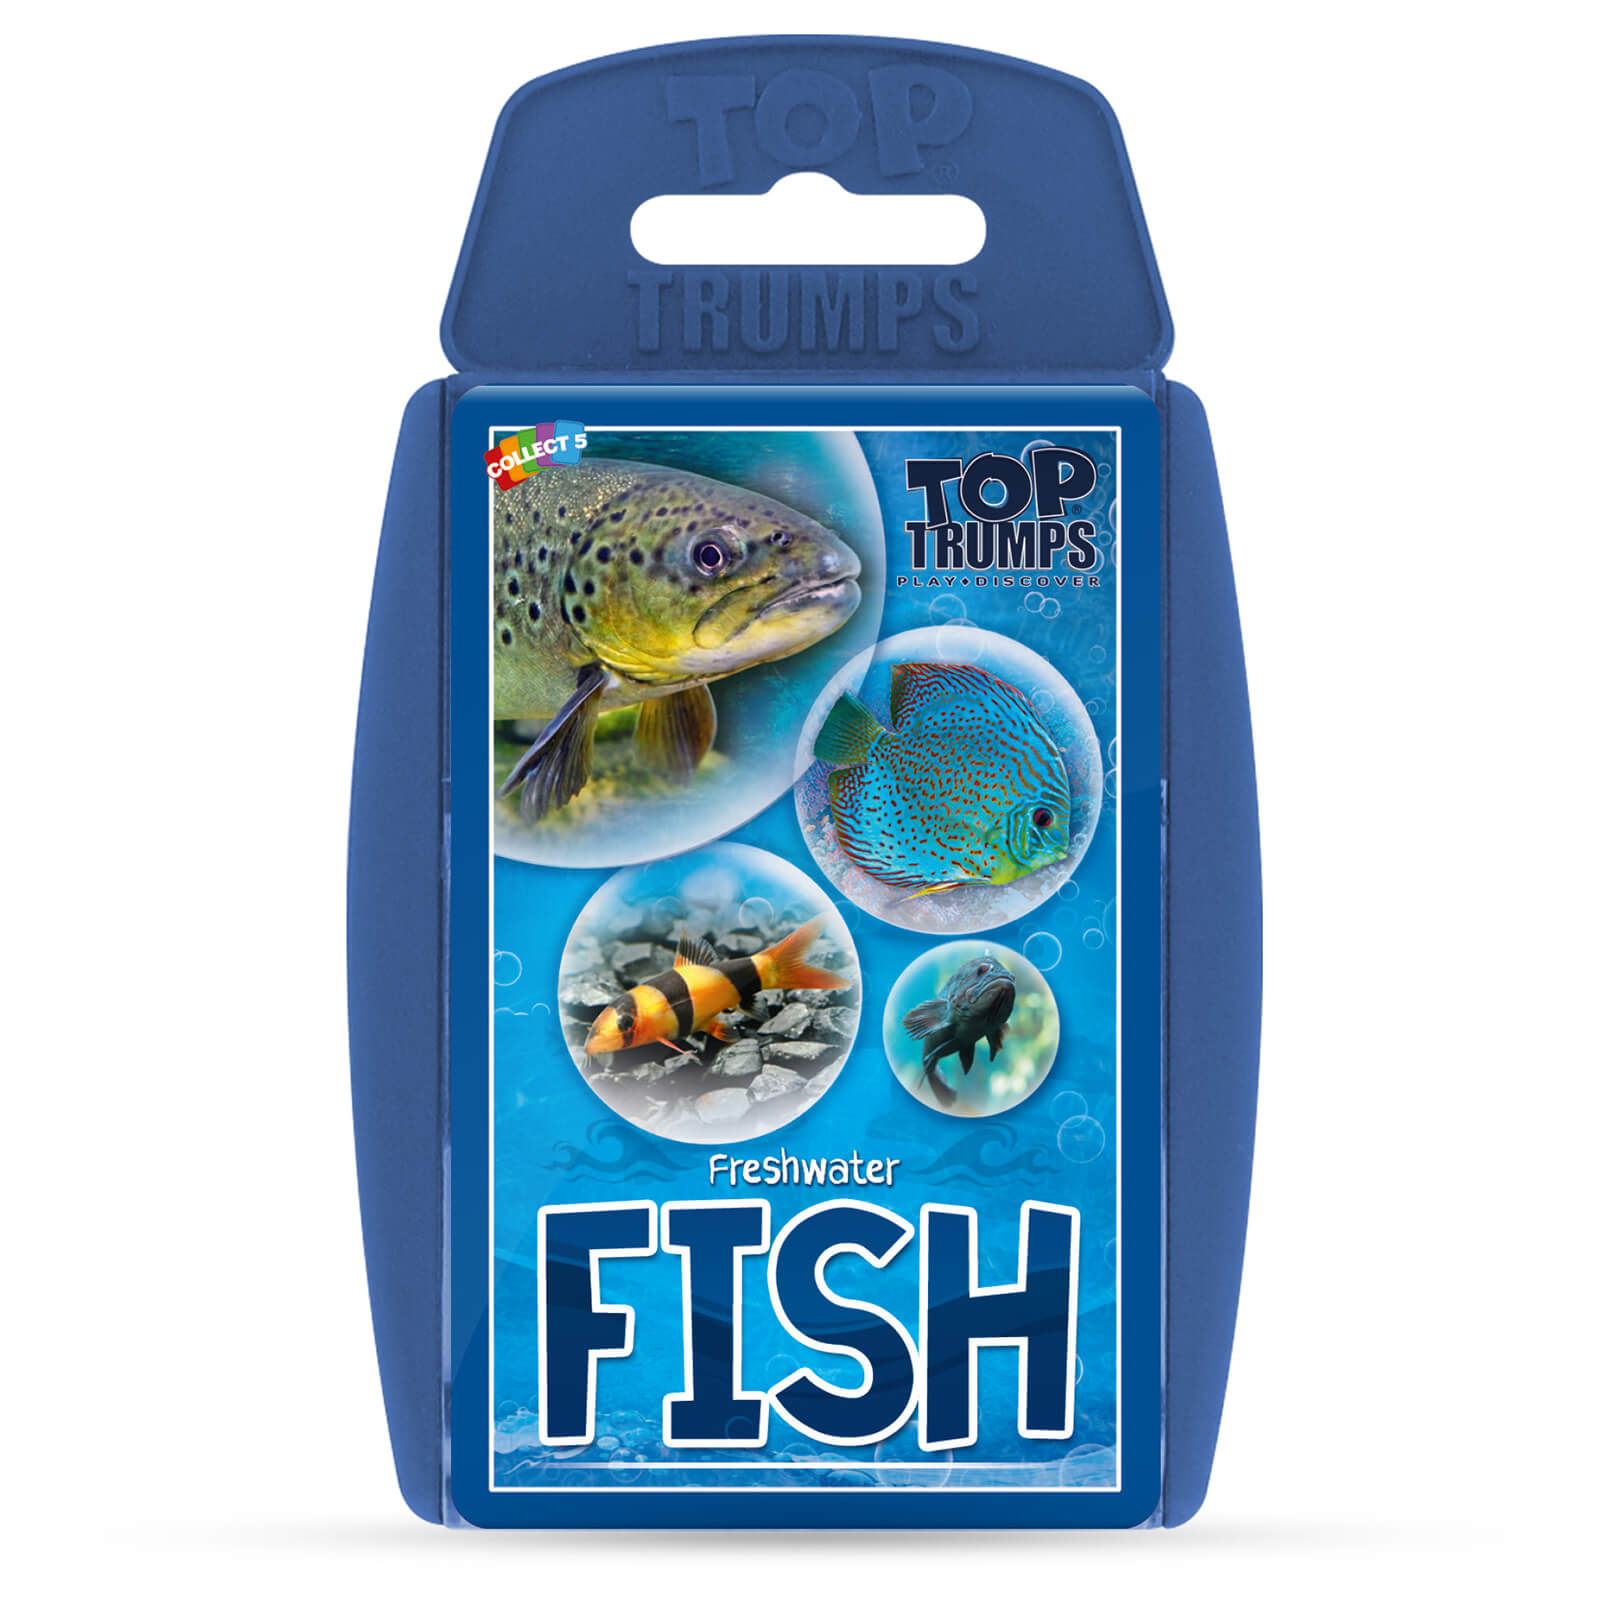 Image of Top Trumps Card Game - Freshwater Fish Edition